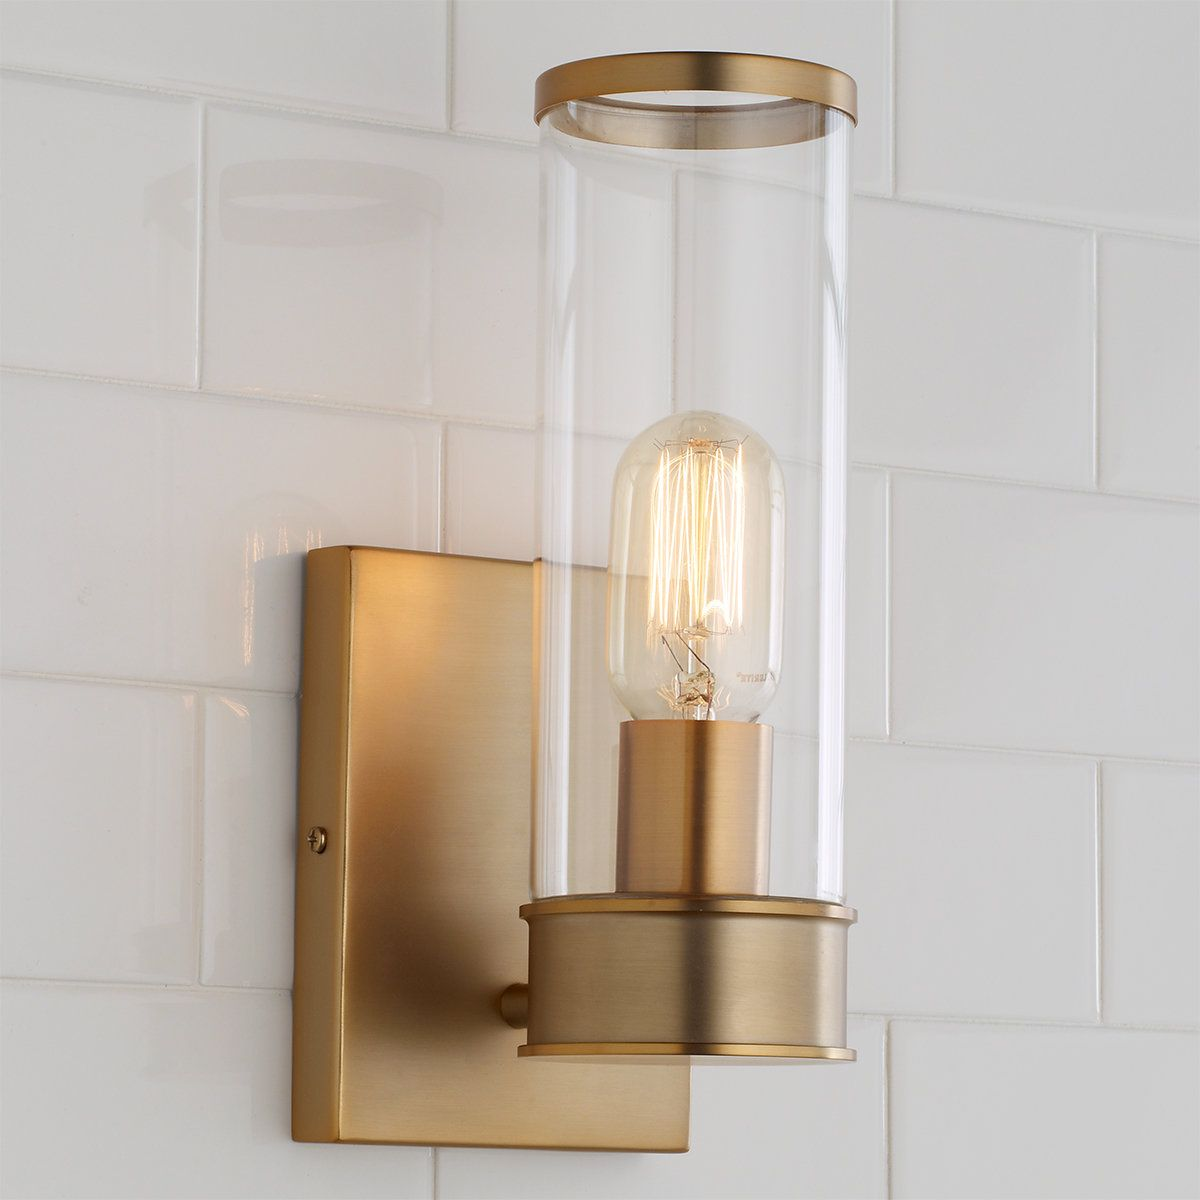 Simple Glass Cylinder Sconce 1 Light In 2020 Sconces Contemporary Wall Sconces Wall Sconce Shade